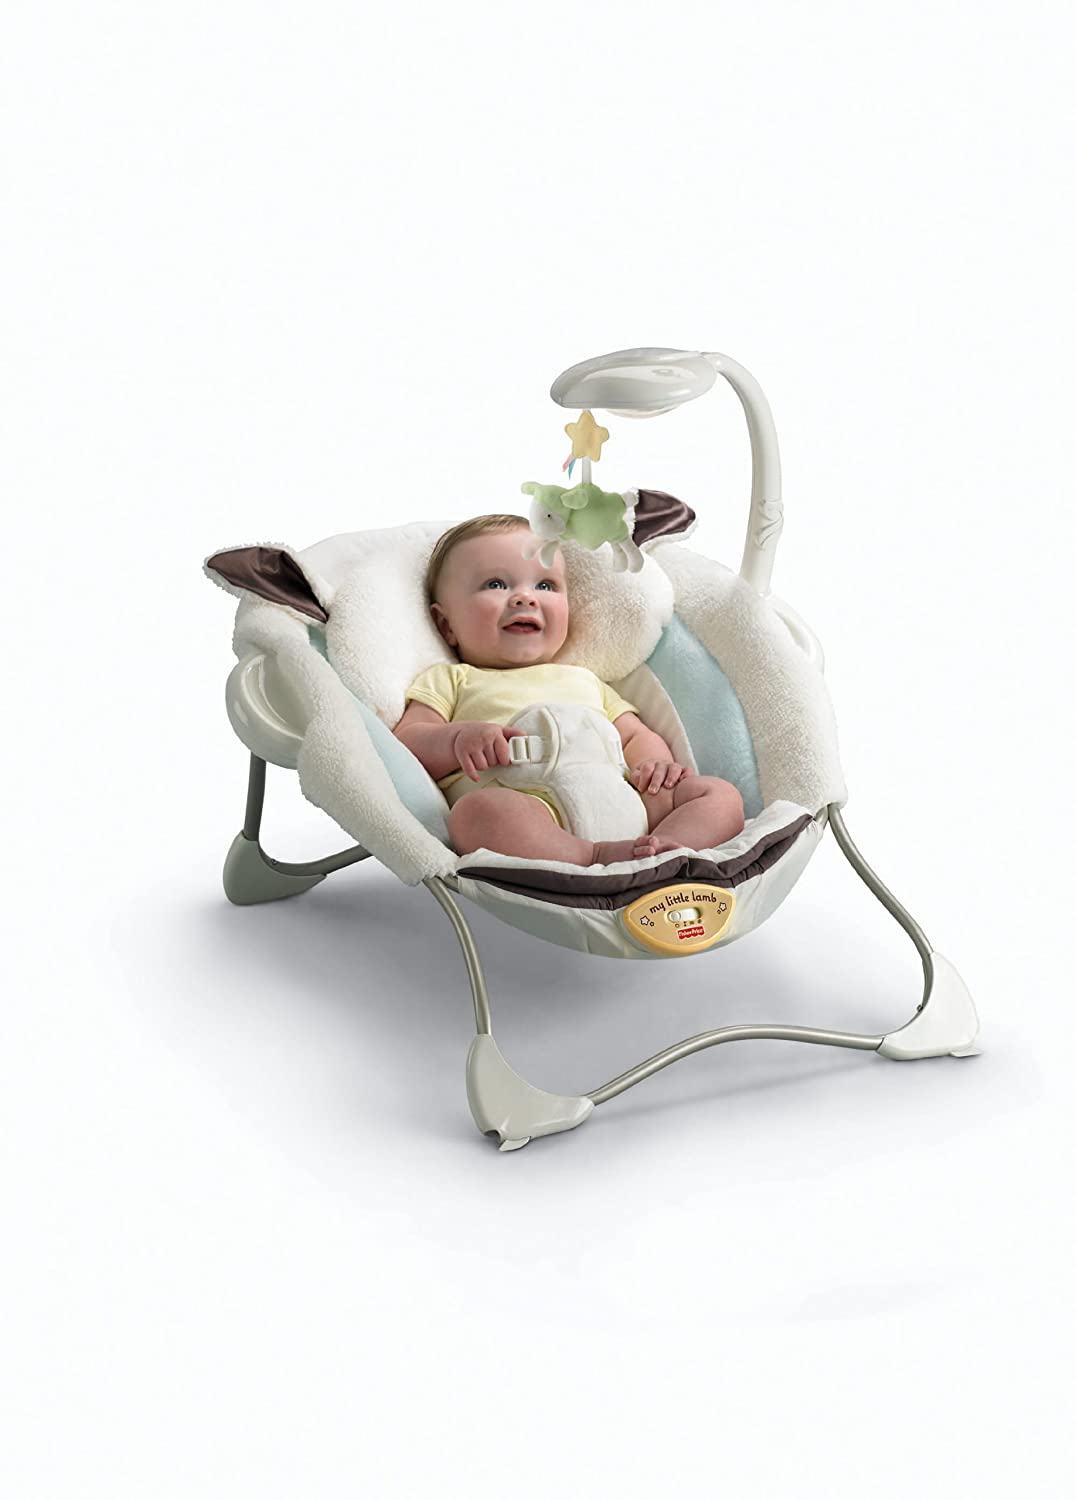 Amazon.com : Fisher-Price My Little Lamb Infant Seat : Infant ...